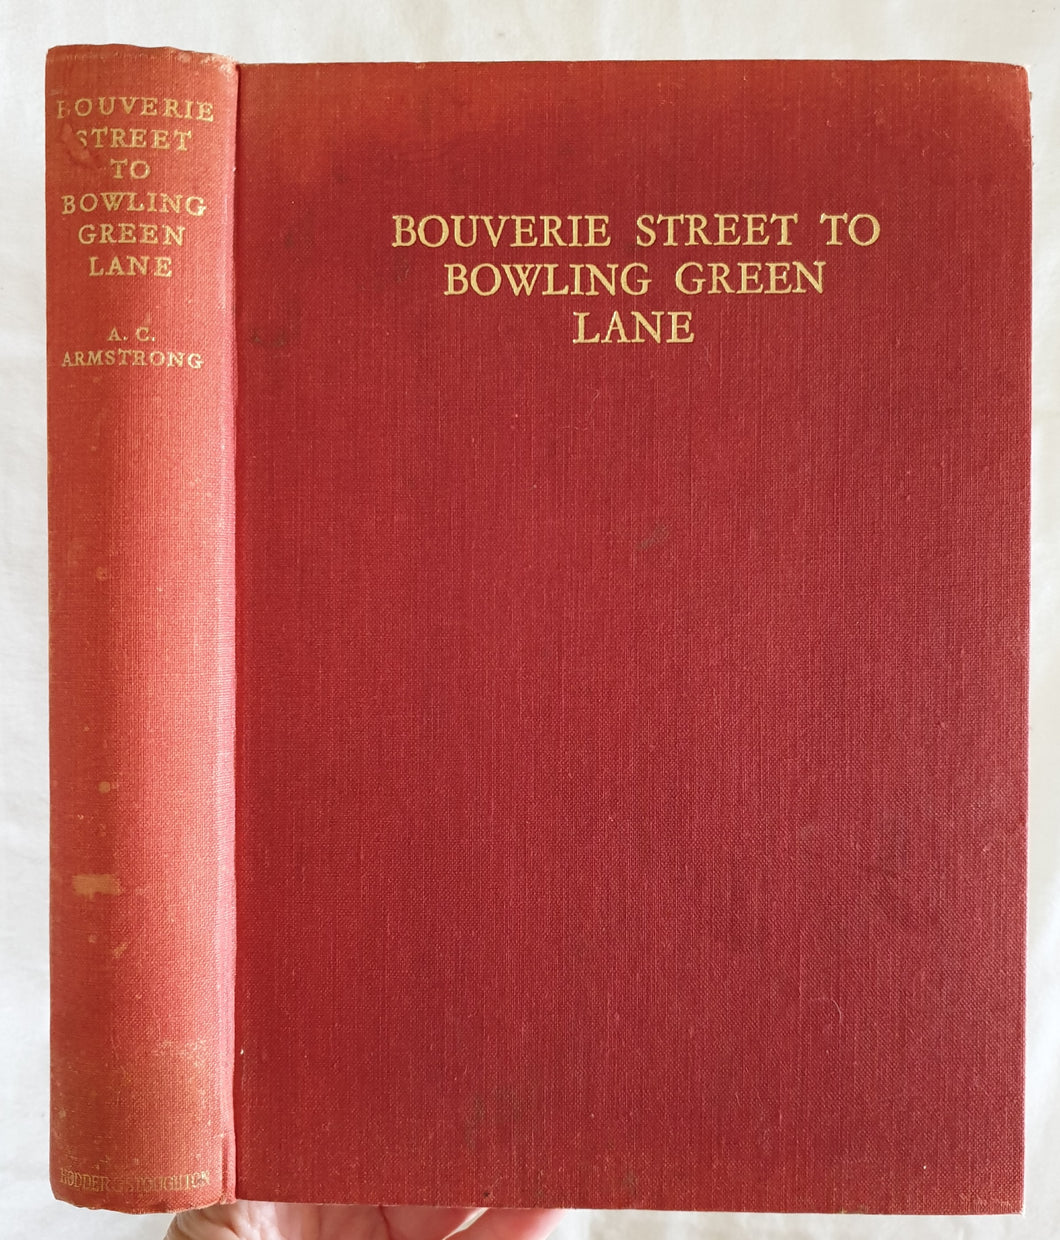 Bouverie Street to Bowling Green Lane  Fifty-five Years of Specialized Publishing  by Arthur C. Armstrong